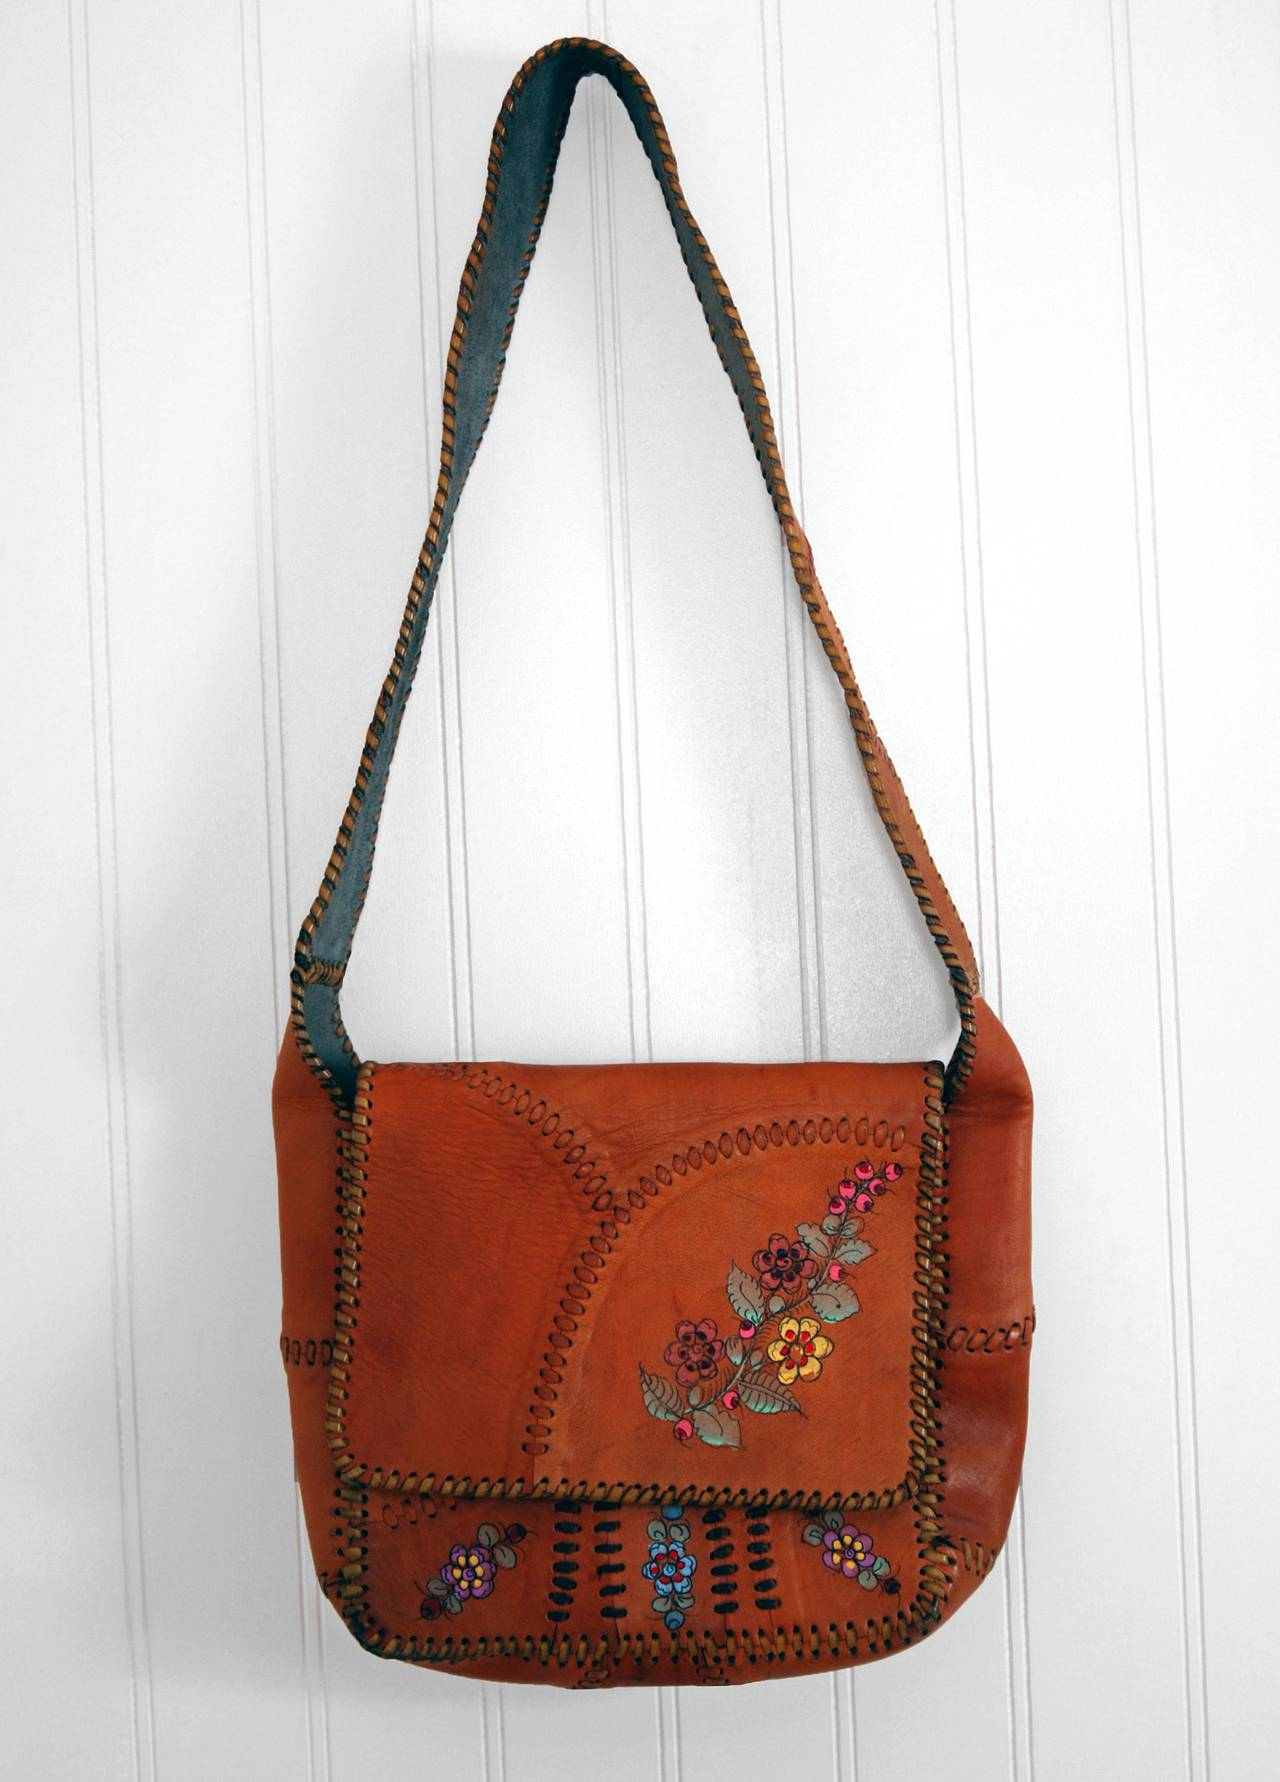 1970's Char Handpainted Whipstitched Leather Bohemian Hippie Messanger Bag Purse 2